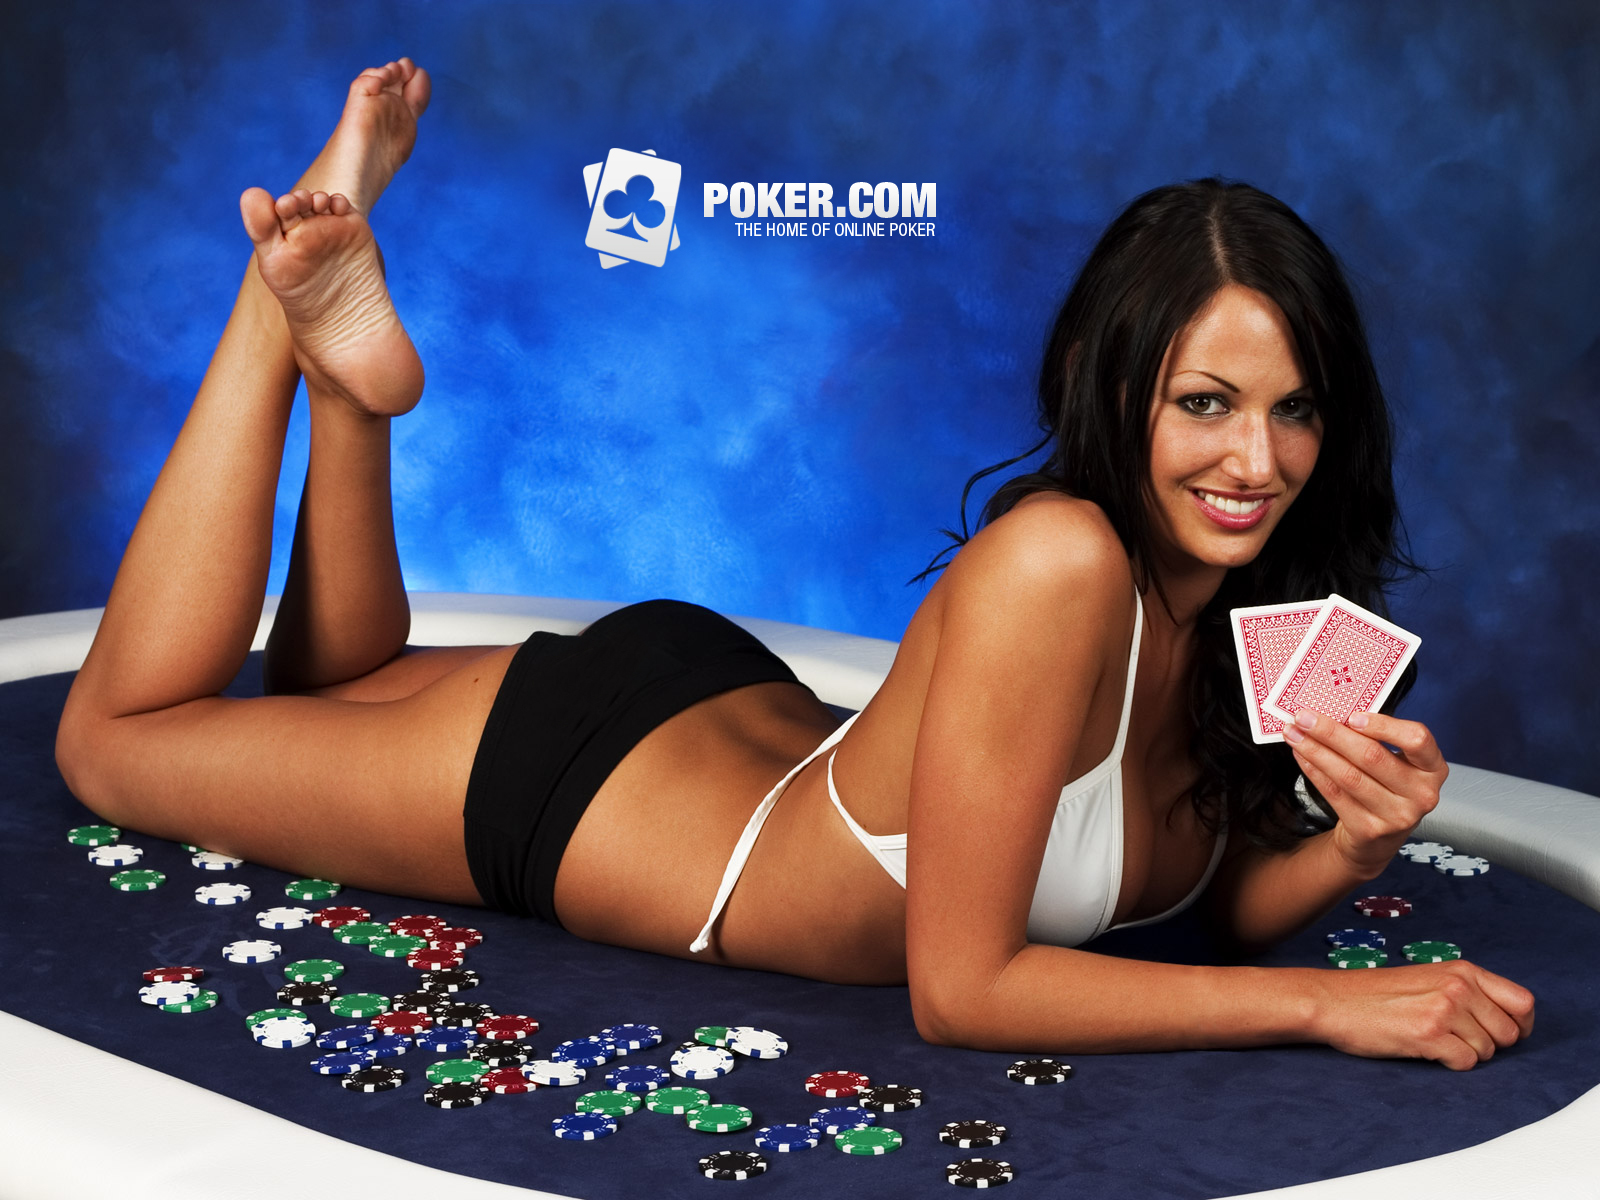 Online Game Poker Players and Beautiful Girl Wallpaper